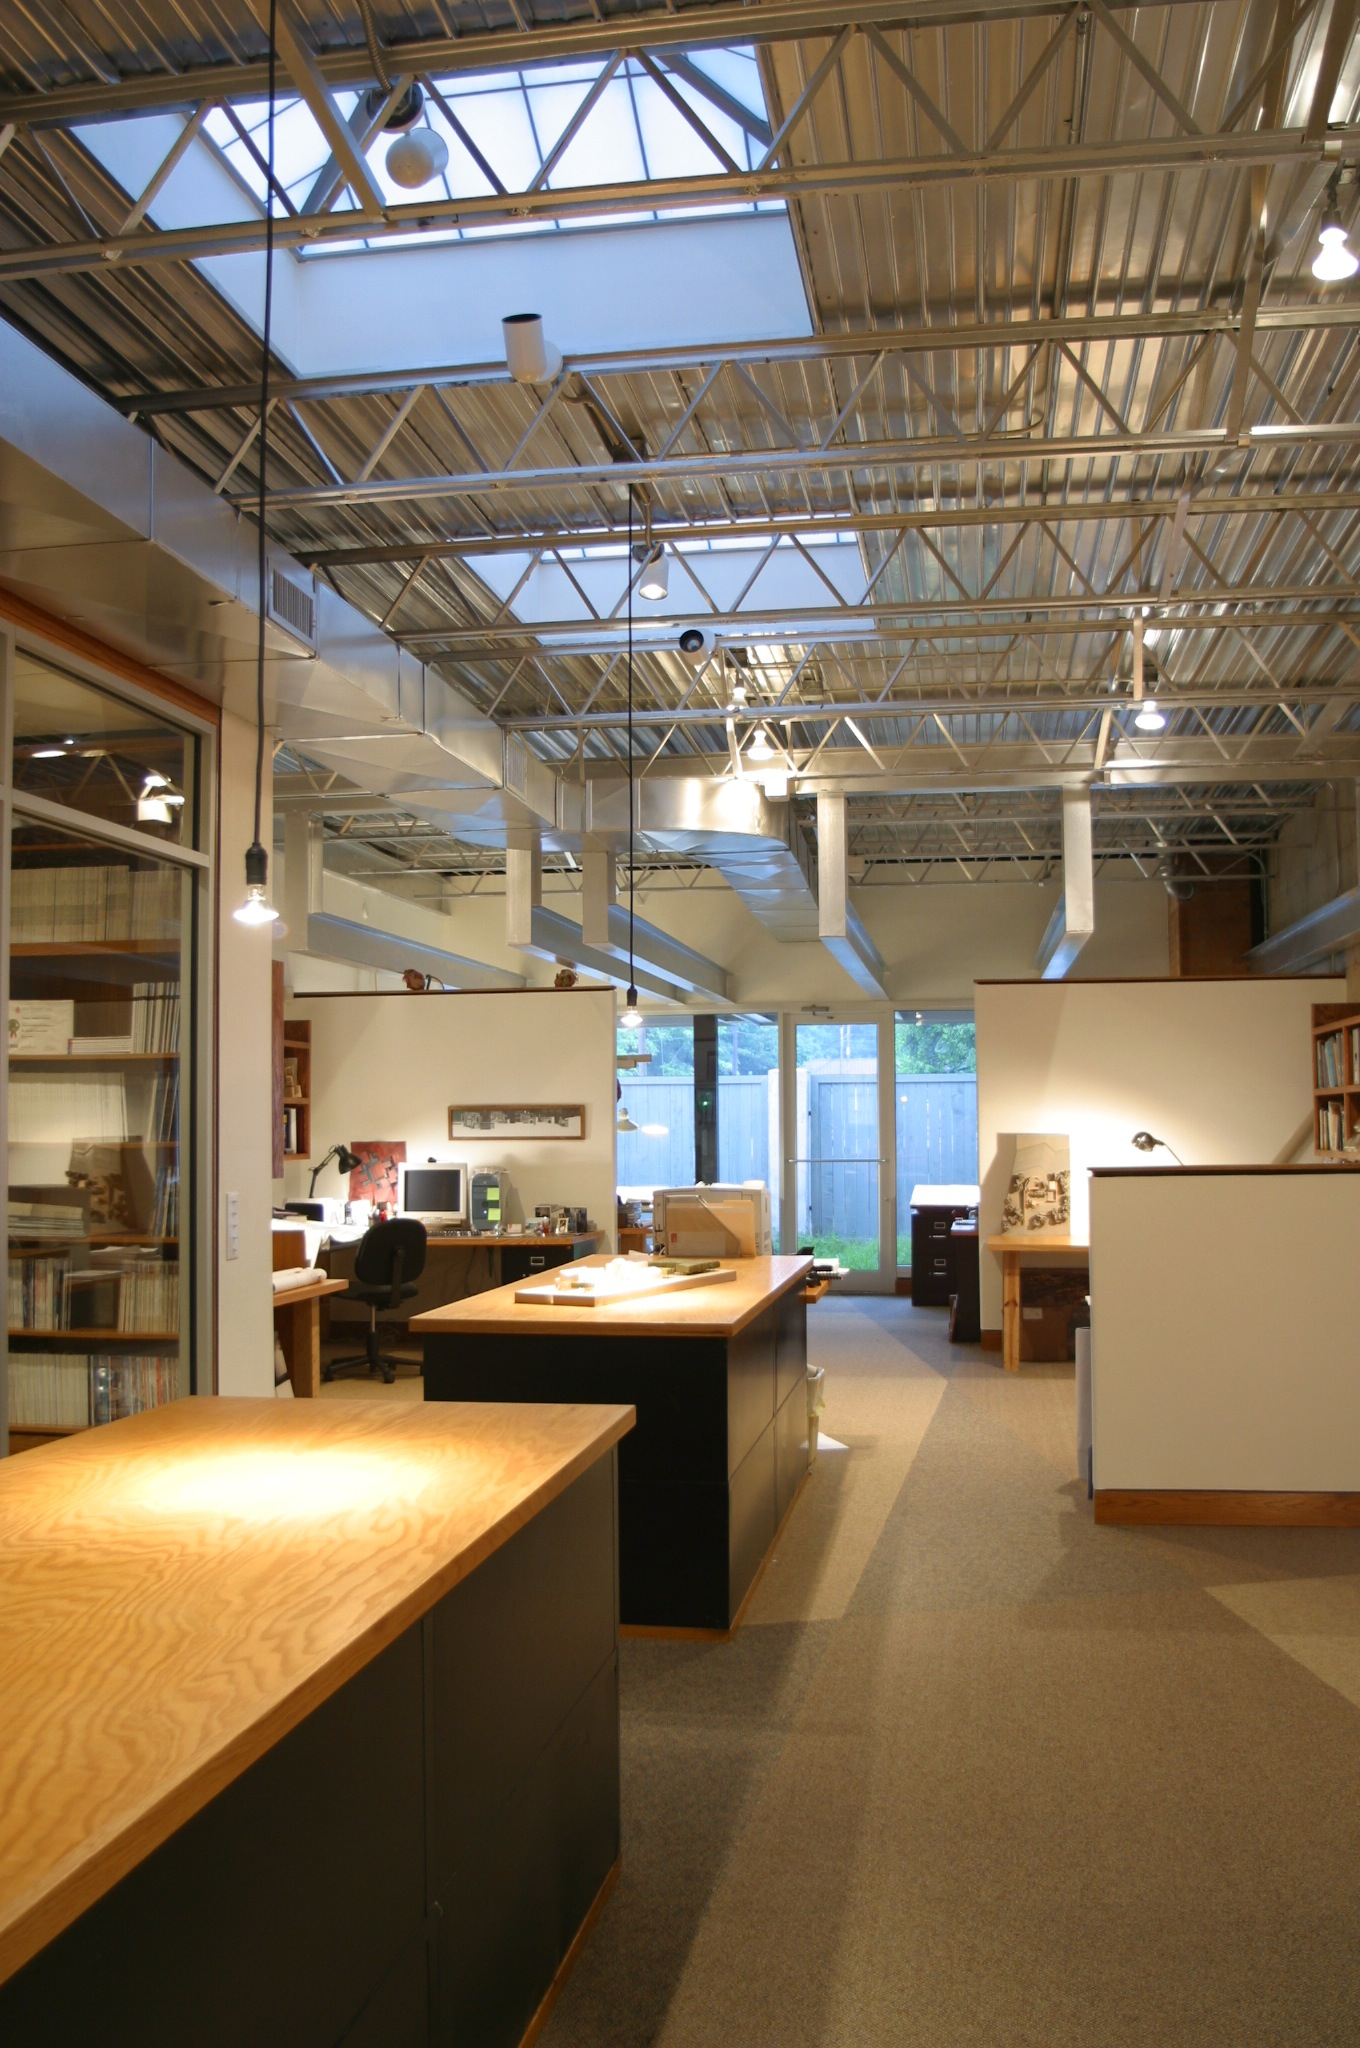 office building renovation in tyler texas - modern office remodel east texas - historic building remodel tyler - butler architectural group